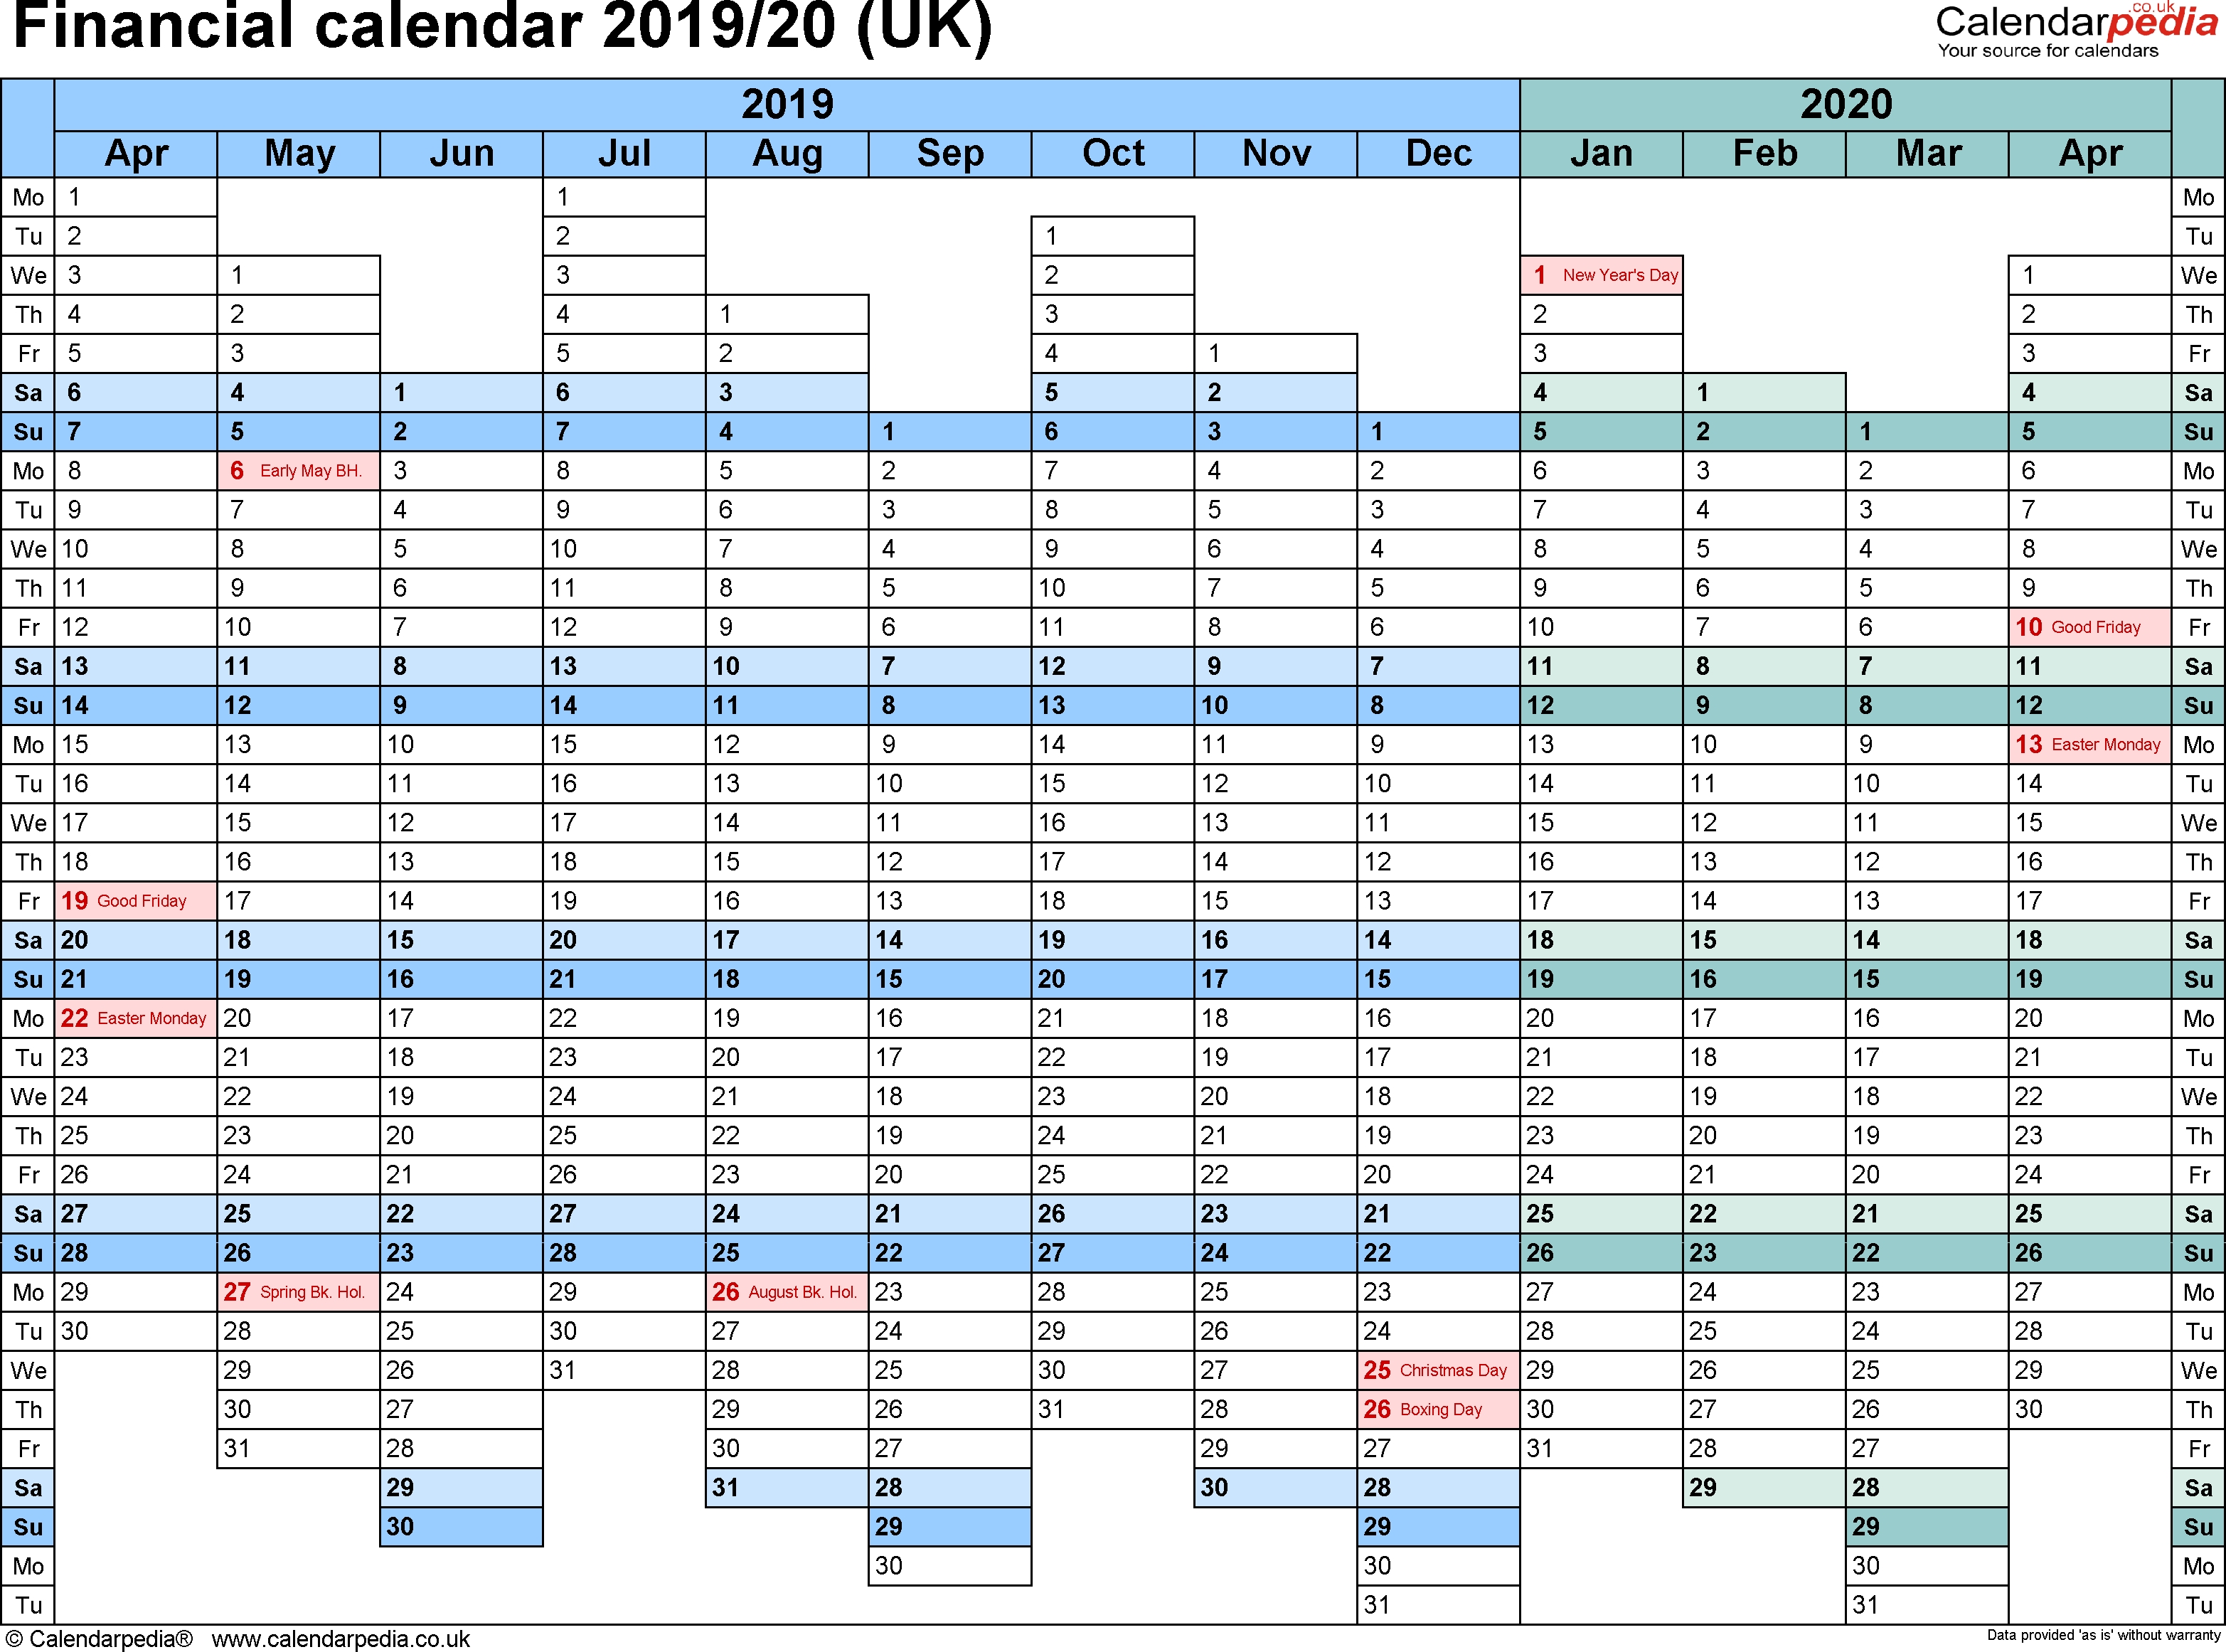 Financial Calendars 2019/20 (Uk) In Pdf Format in Hmrc Tax 2019 - 2020 Calendars